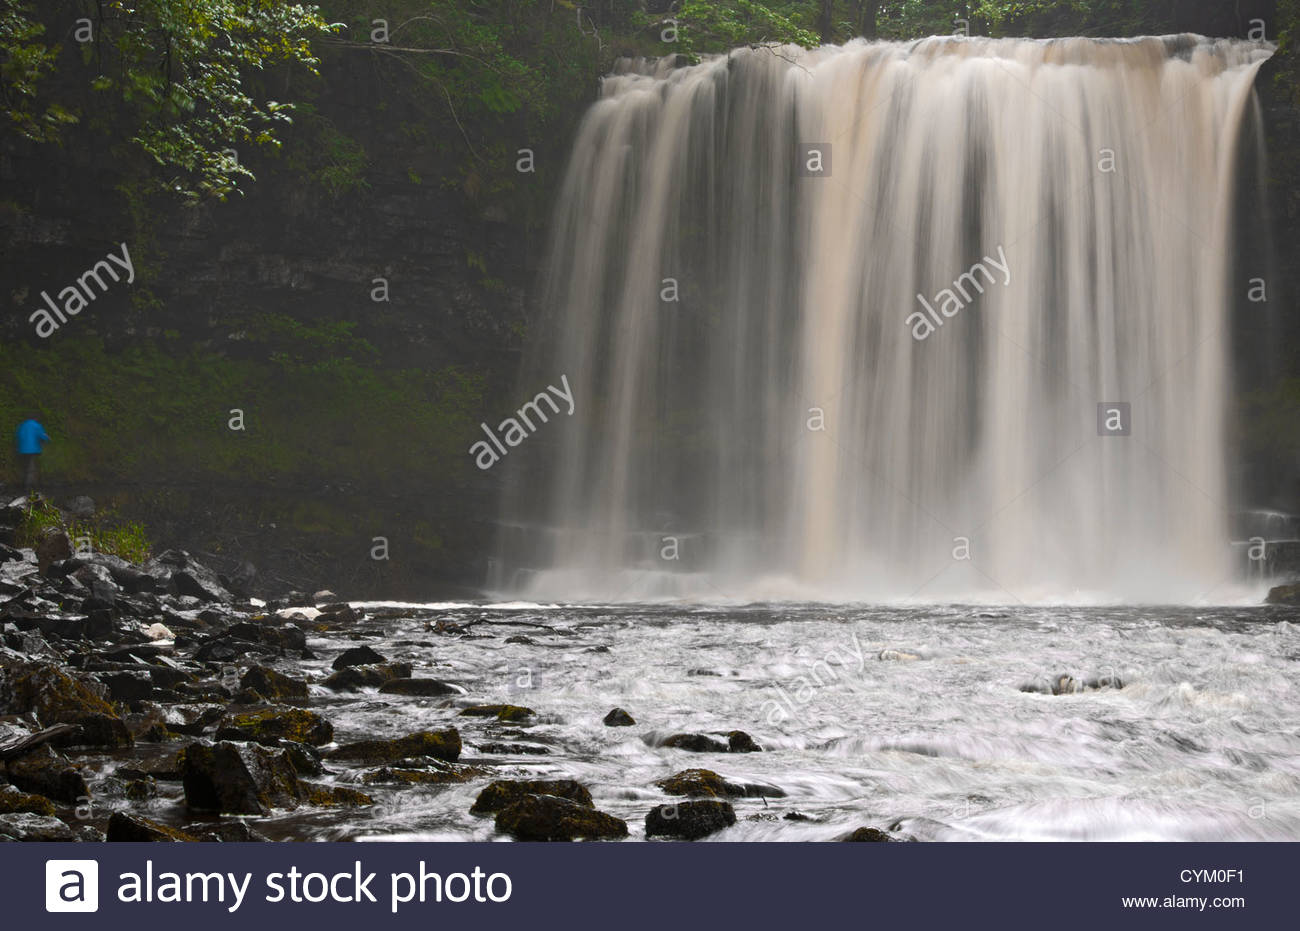 Time lapse view of waterfall in forest - Stock Image